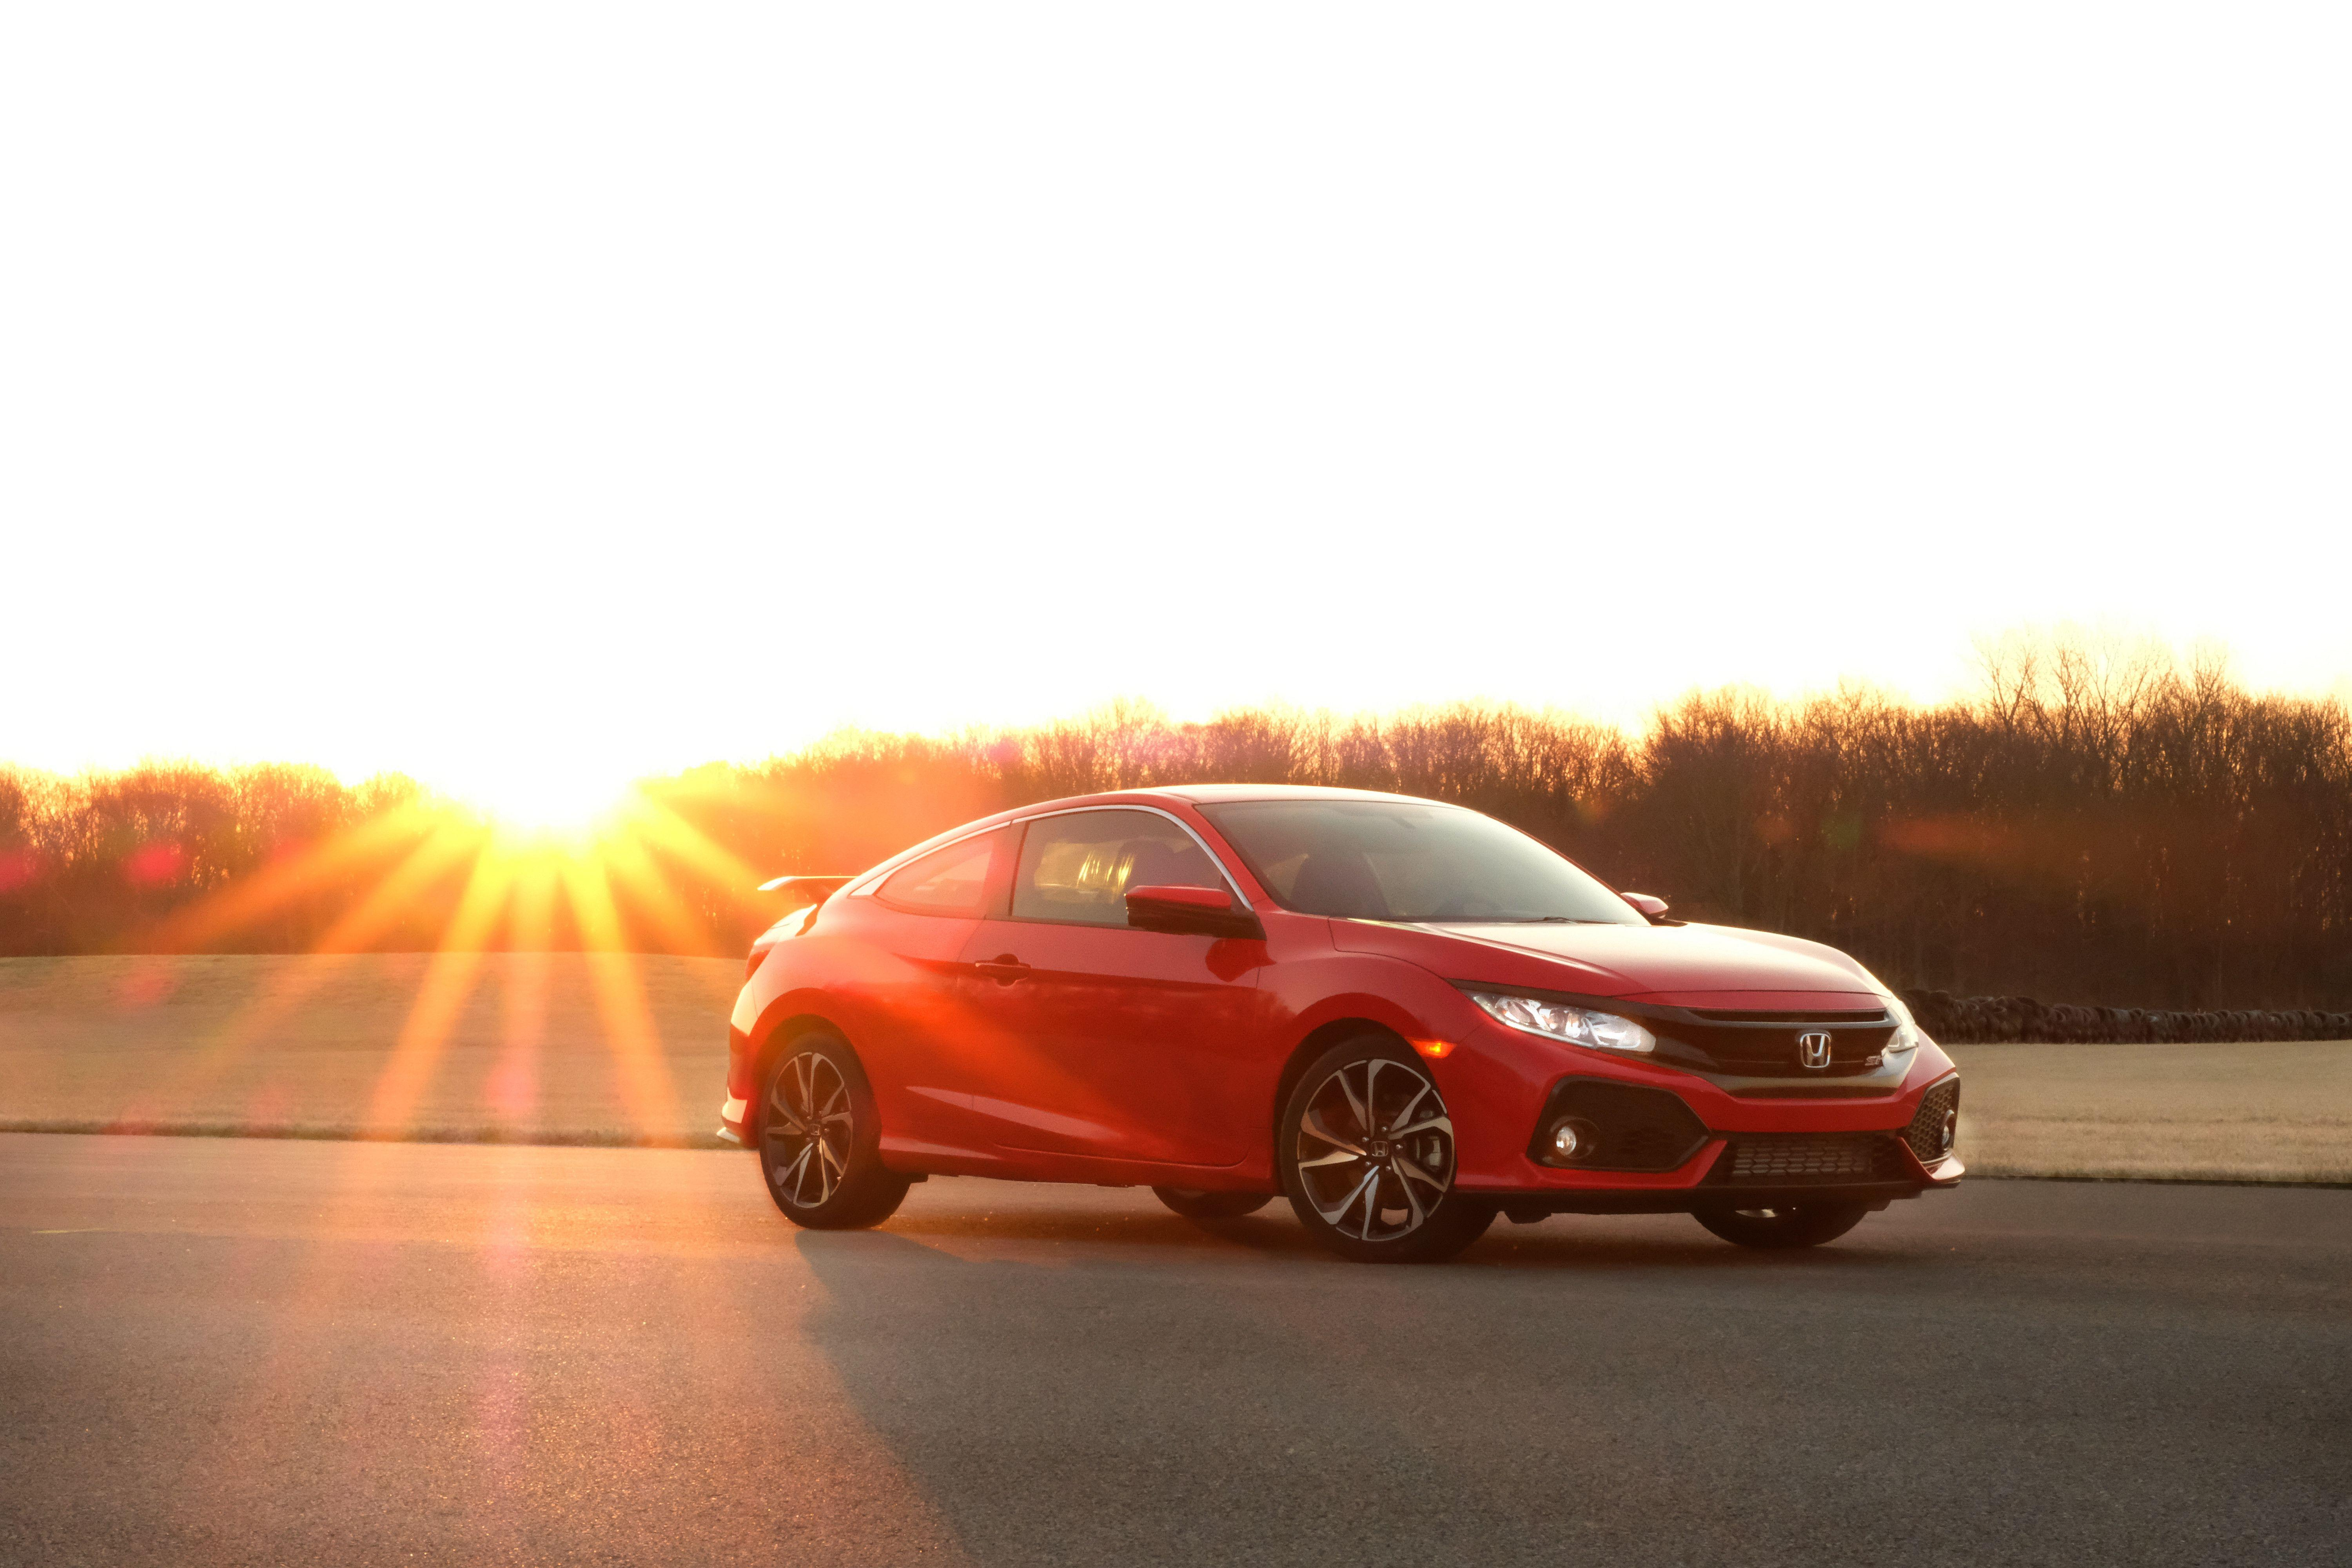 """<p>Easily the best-handling front-wheel-drive car on the market today, <a href=""""https://www.caranddriver.com/honda/civic-si"""" rel=""""nofollow noopener"""" target=""""_blank"""" data-ylk=""""slk:Honda's Civic Si coupe"""" class=""""link rapid-noclick-resp"""">Honda's Civic Si coupe </a>(and its mechanically identical four-door sedan sibling) is a performance bargain. It is quick, thanks to its turbocharged four-cylinder engine, and it is fun to drive, thanks to its six-speed manual transmission and well-sorted chassis. The Si model exists between the mainstream Civic lineup and <a href=""""https://www.caranddriver.com/honda/civic-type-r"""" rel=""""nofollow noopener"""" target=""""_blank"""" data-ylk=""""slk:the bonkers, 306-hp Civic Type R"""" class=""""link rapid-noclick-resp"""">the bonkers, 306-hp Civic Type R</a>, and shares <a href=""""https://www.caranddriver.com/features/a25252134/10best-cars-2019/"""" rel=""""nofollow noopener"""" target=""""_blank"""" data-ylk=""""slk:a 10Best Cars award from us"""" class=""""link rapid-noclick-resp"""">a 10Best Cars award from us</a> with the latter. We've also run the Si at our <a href=""""https://www.caranddriver.com/features/a15082147/honda-civic-si-at-lightning-lap-2017-feature/"""" rel=""""nofollow noopener"""" target=""""_blank"""" data-ylk=""""slk:annual Lightning Lap track test in 2017"""" class=""""link rapid-noclick-resp"""">annual Lightning Lap track test in 2017</a>, where it was the only car that year to gain speed through Virginia International Raceway's treacherous high-speed uphill ess-curves. To see what sets it apart from the regular Civic, swipe on!</p>"""